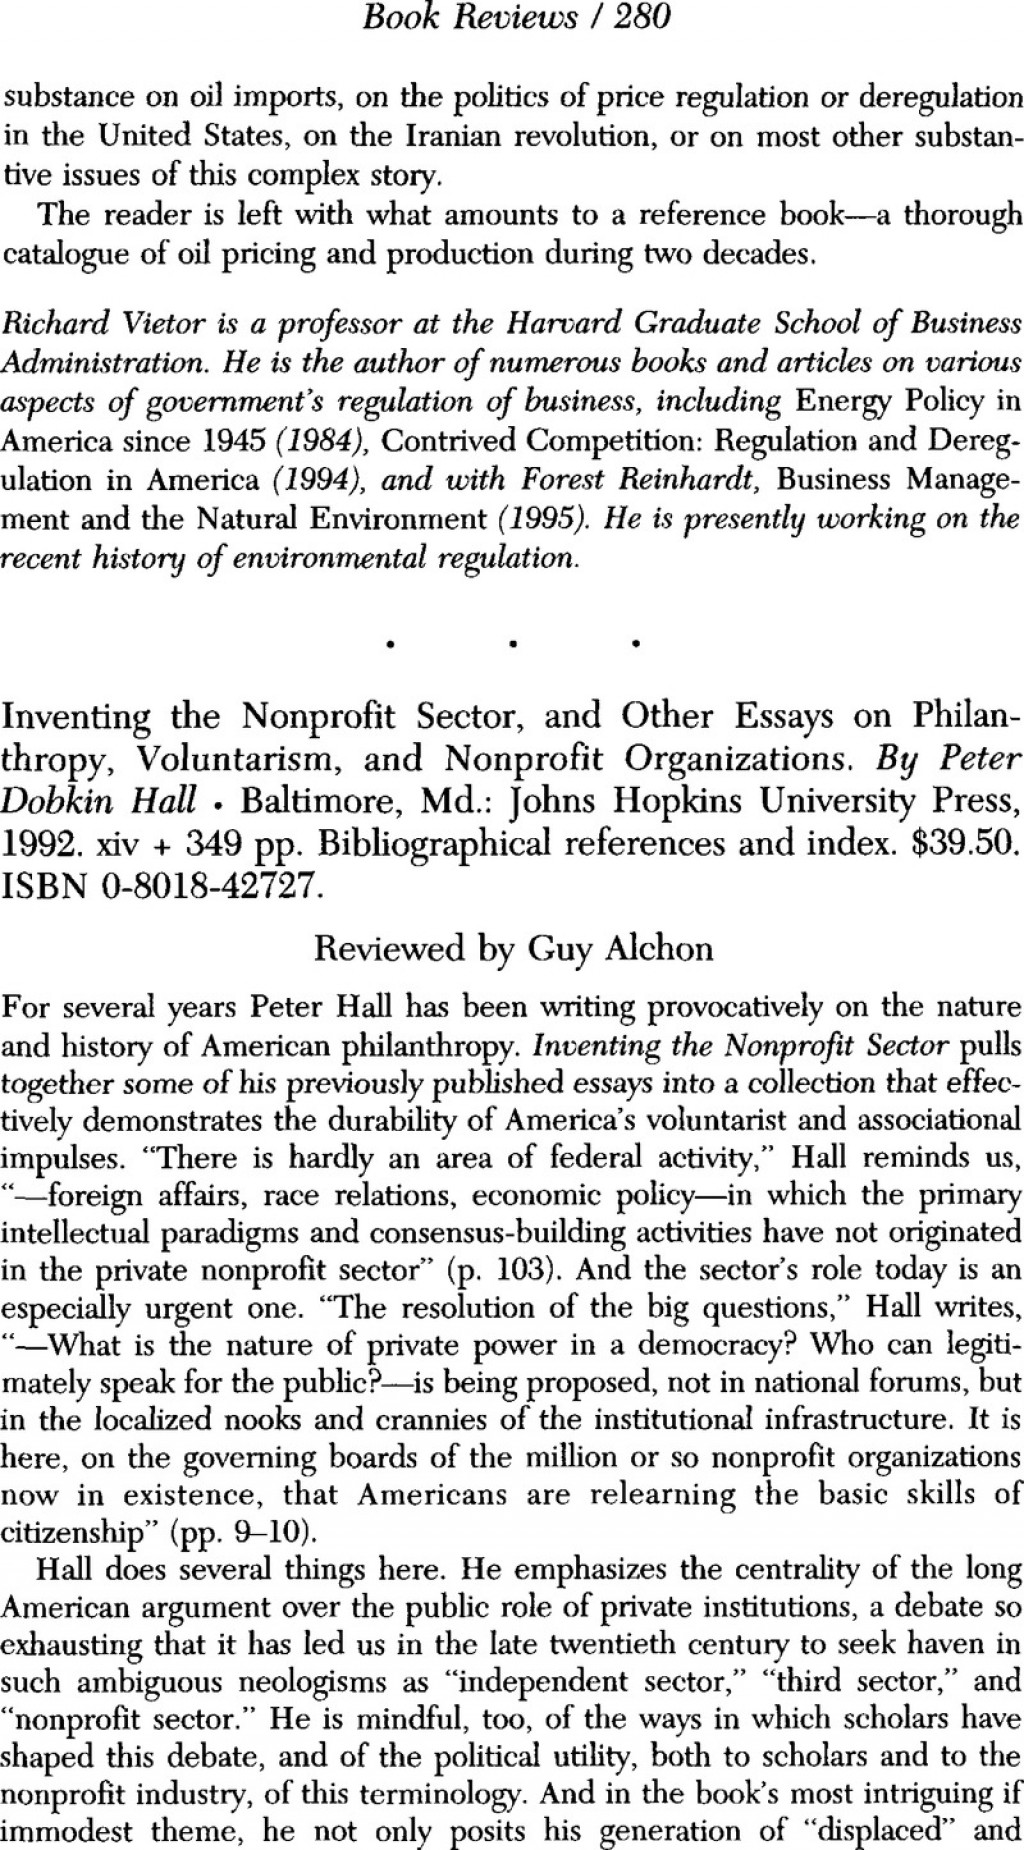 023 Firstpage S0007680500043634a Essay Example John Hopkins Essays That Singular Worked Johns 2021 2018 2020 Large